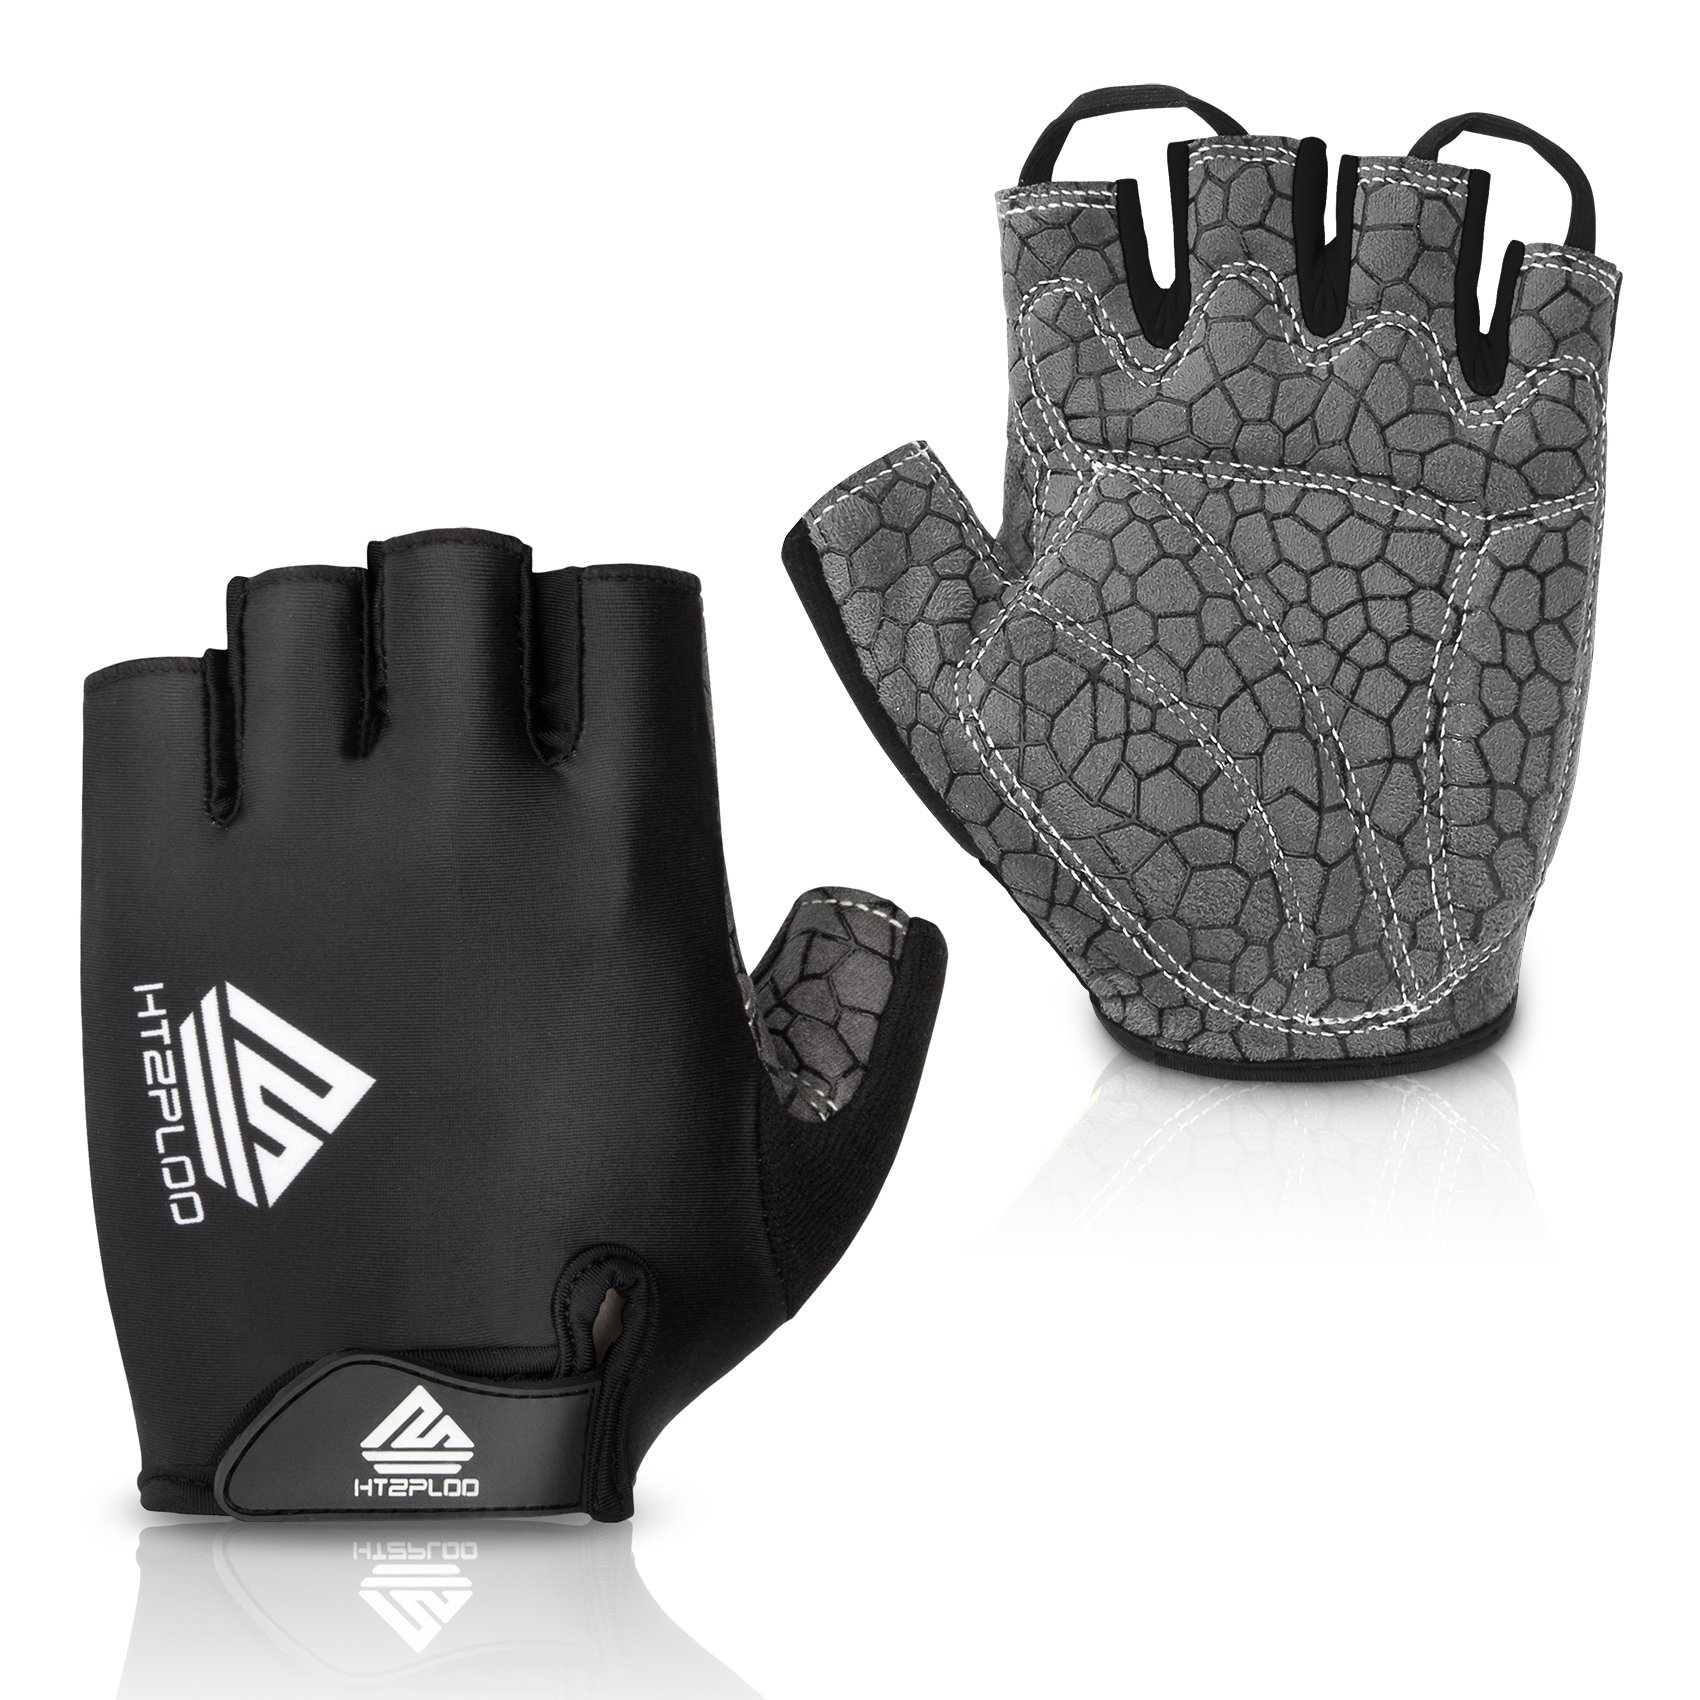 eb4317e00 HTZPLOO Bike Gloves Bicycle Gloves Cycling Gloves Mountain Biking Gloves  with Anti-Slip Shock-Absorbing Pad Breathable Half Finger Outdoor Sports  Gloves for ...